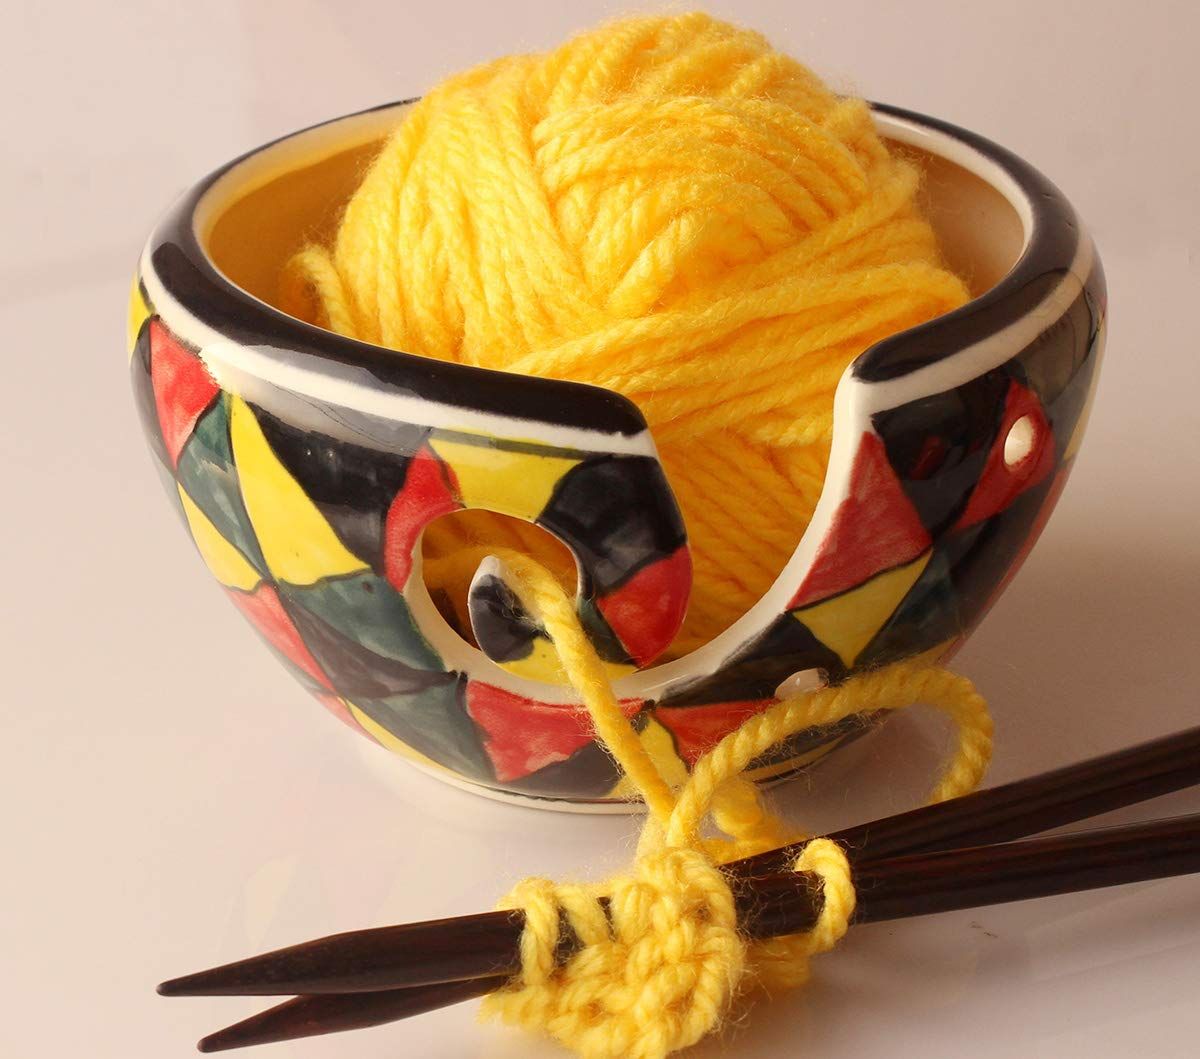 abhandicrafts - Yarn Bowl 6 inch for Knitting, Crochet for Moms, Grandmothers 4336930717